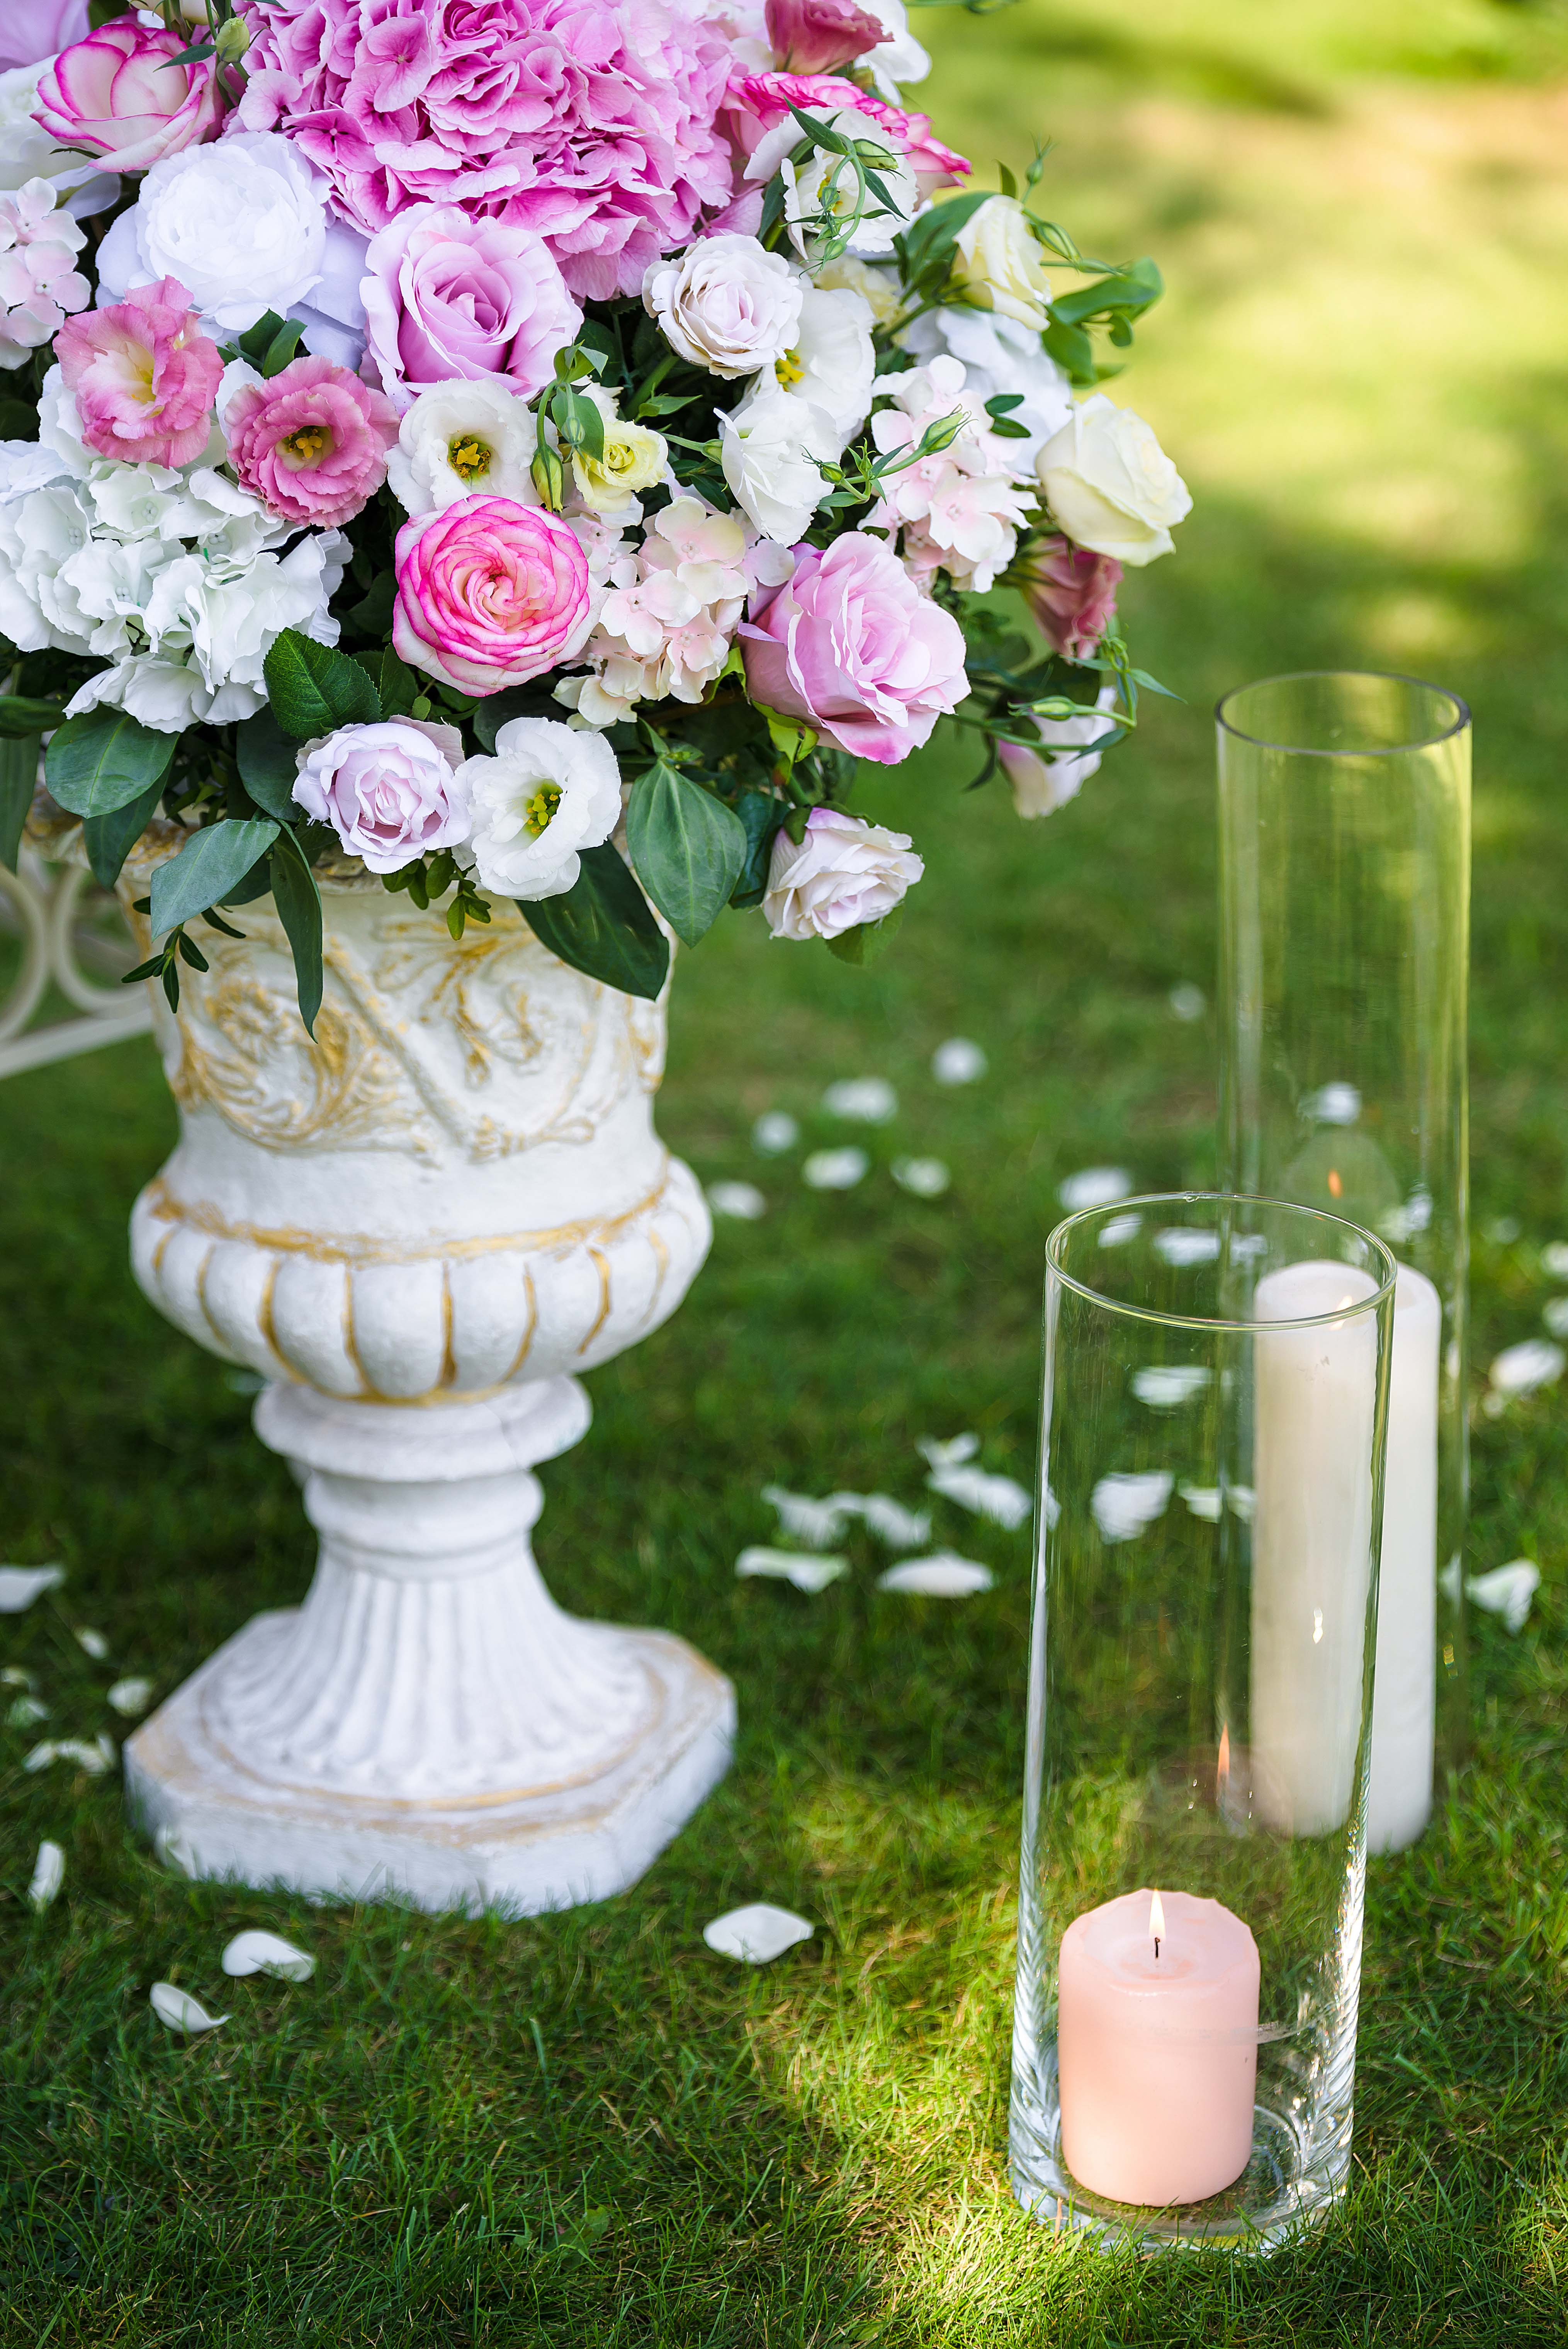 Vases With Tender Pink Flowers Outdoor On The Grass Wedding Dec